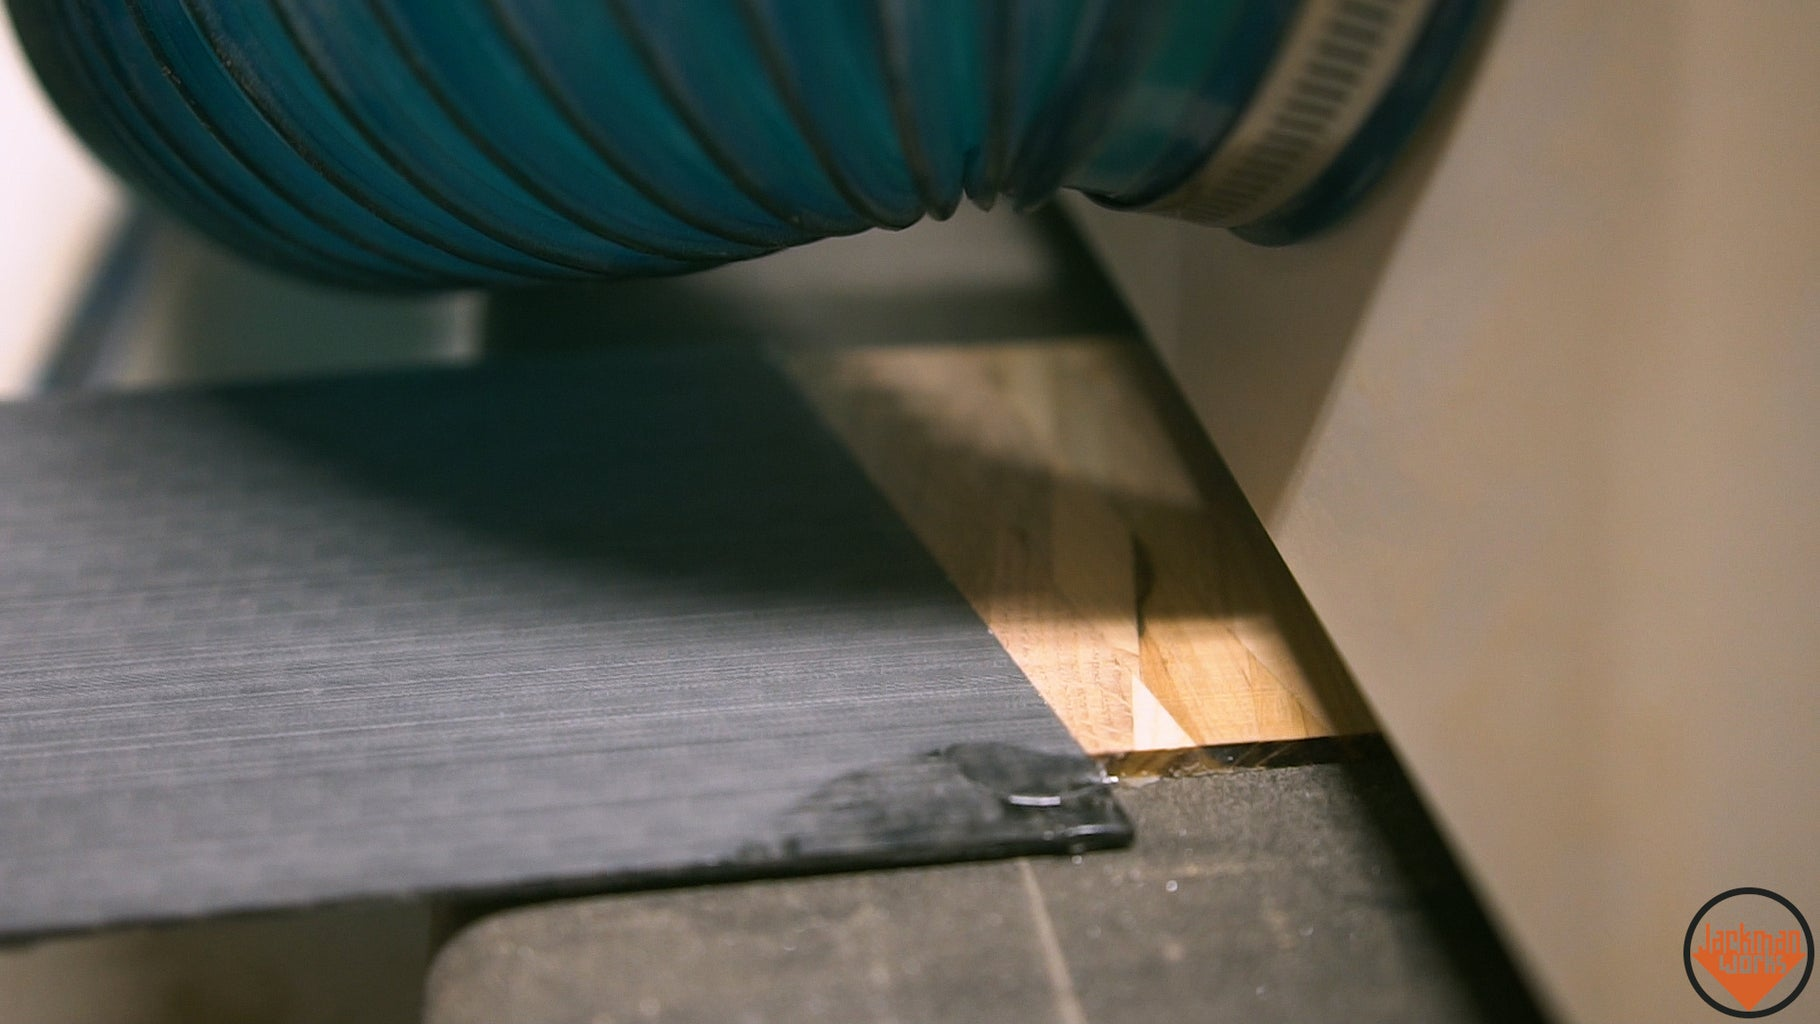 Epoxying the Carbon Fiber to the Pallet Wood